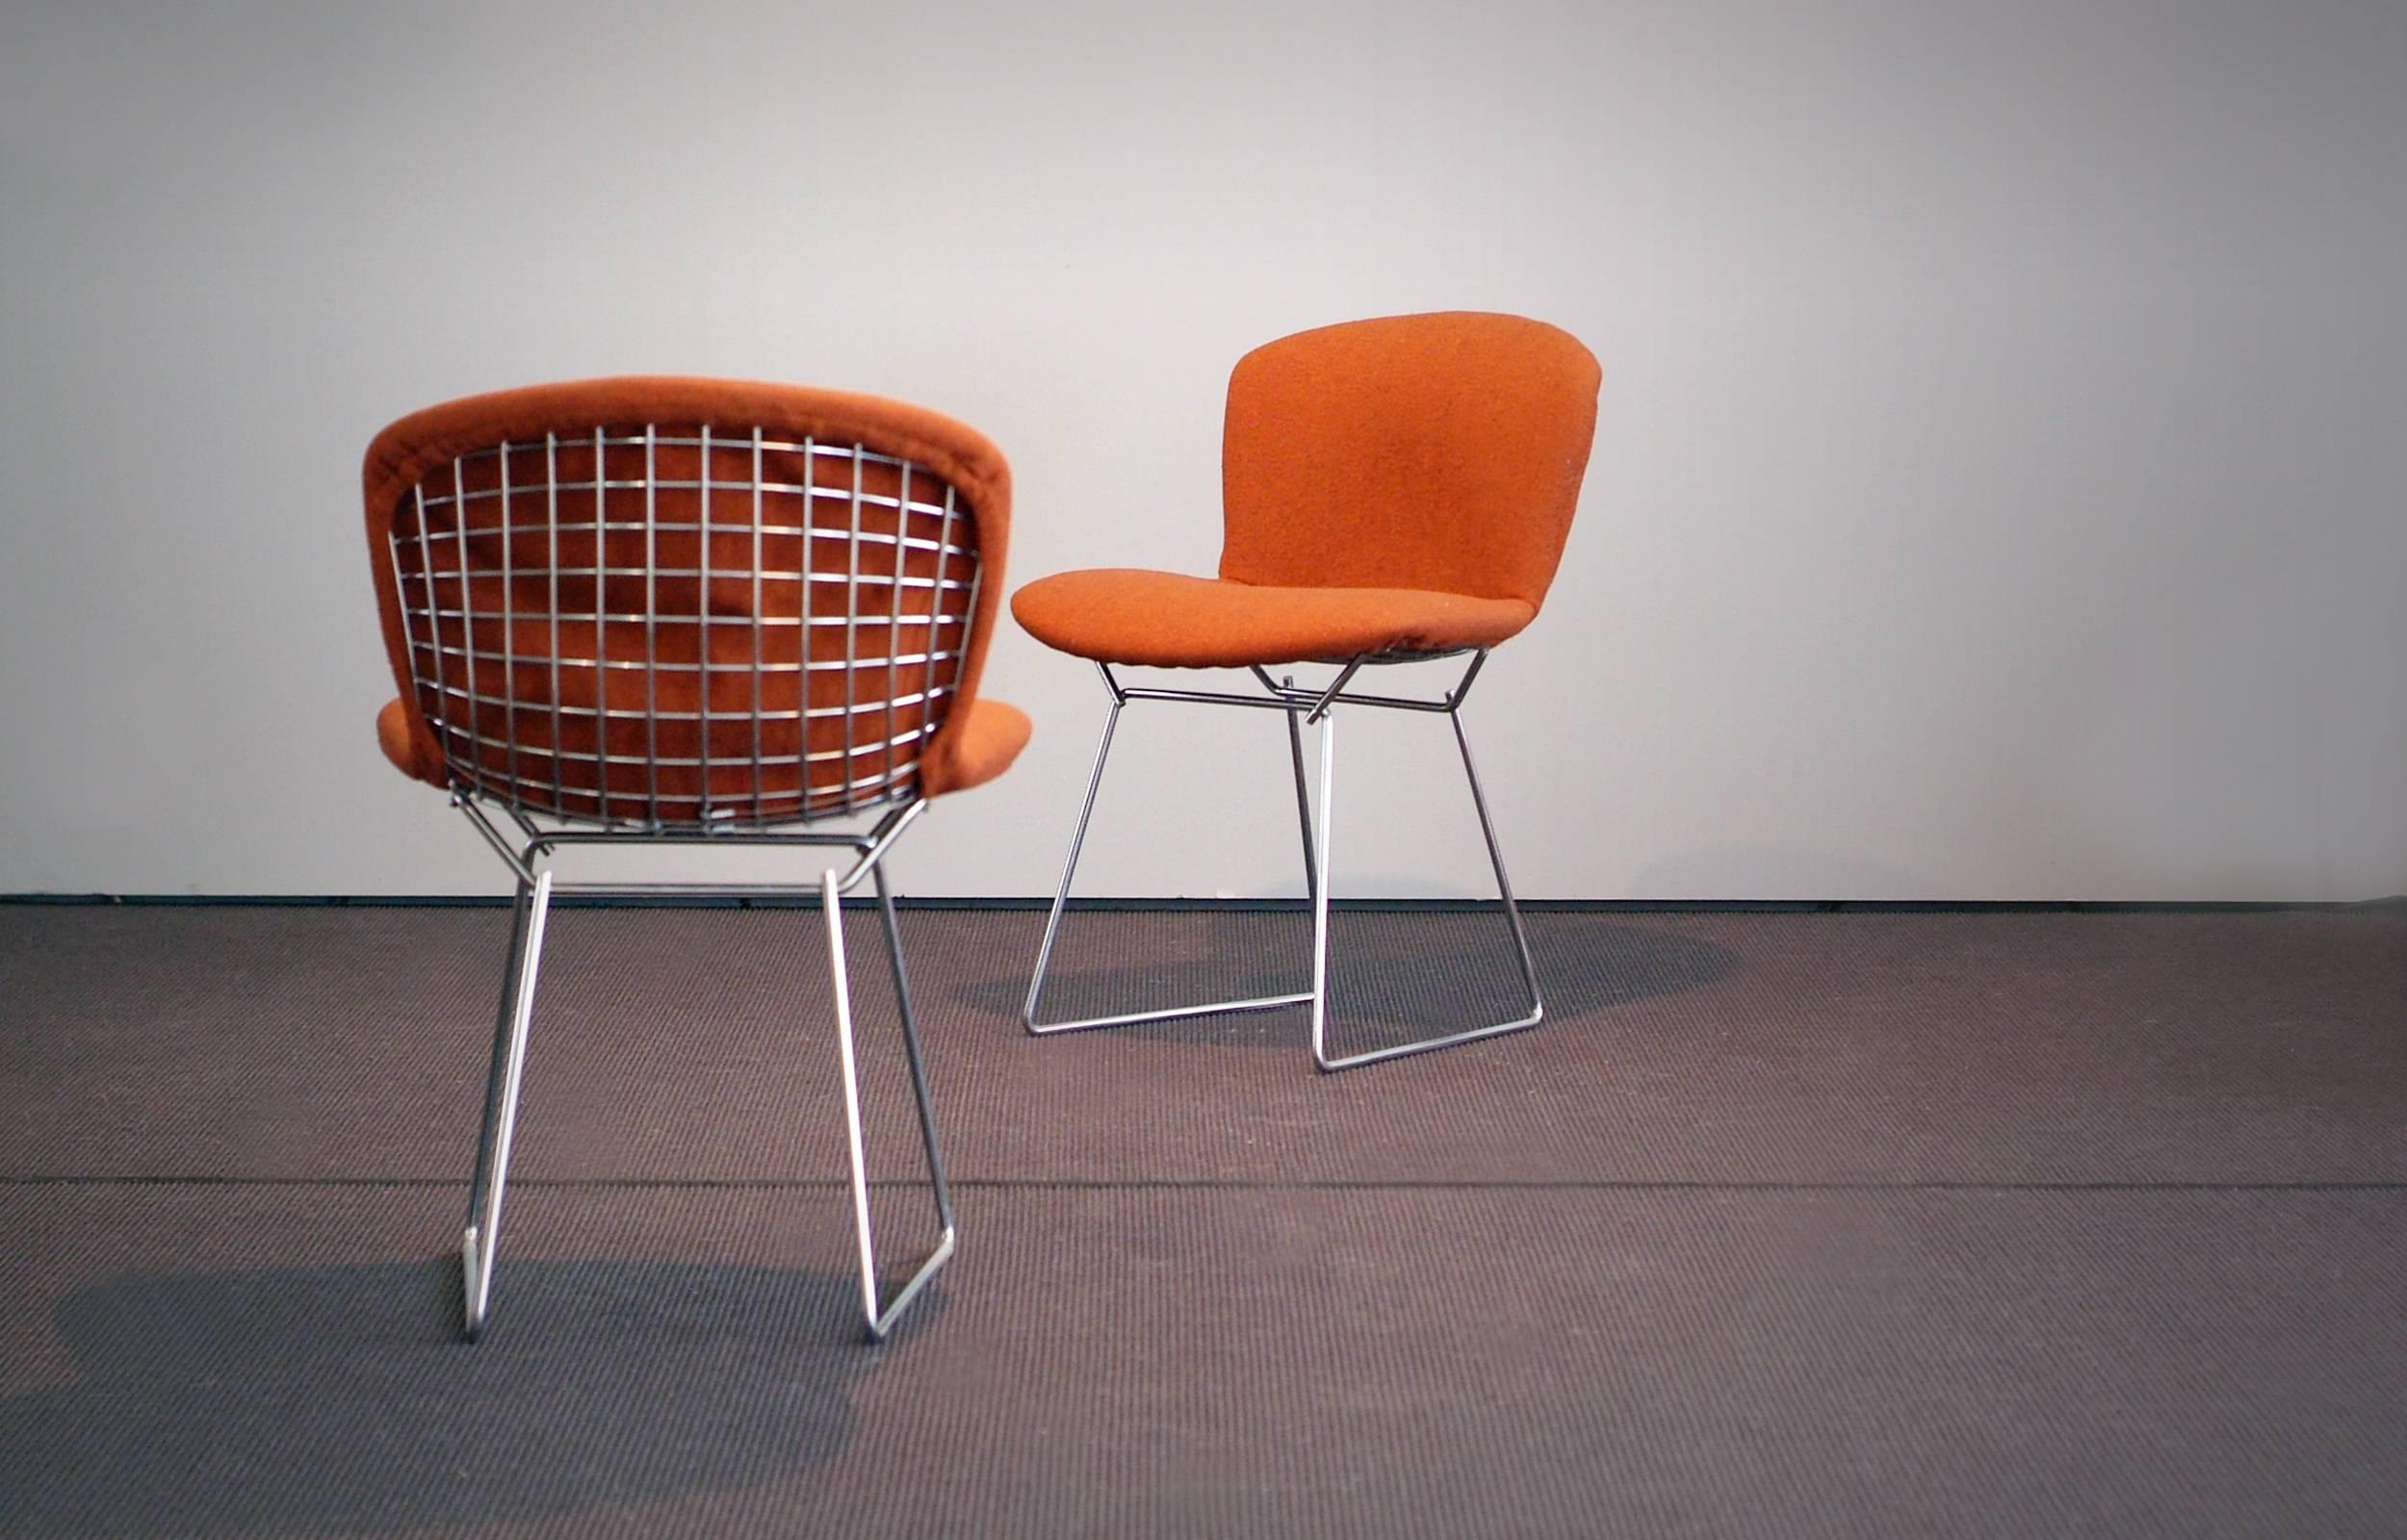 bertoia wire chair original meditation ikea harry side chairs rust red fabric 1960s set of mid century modern